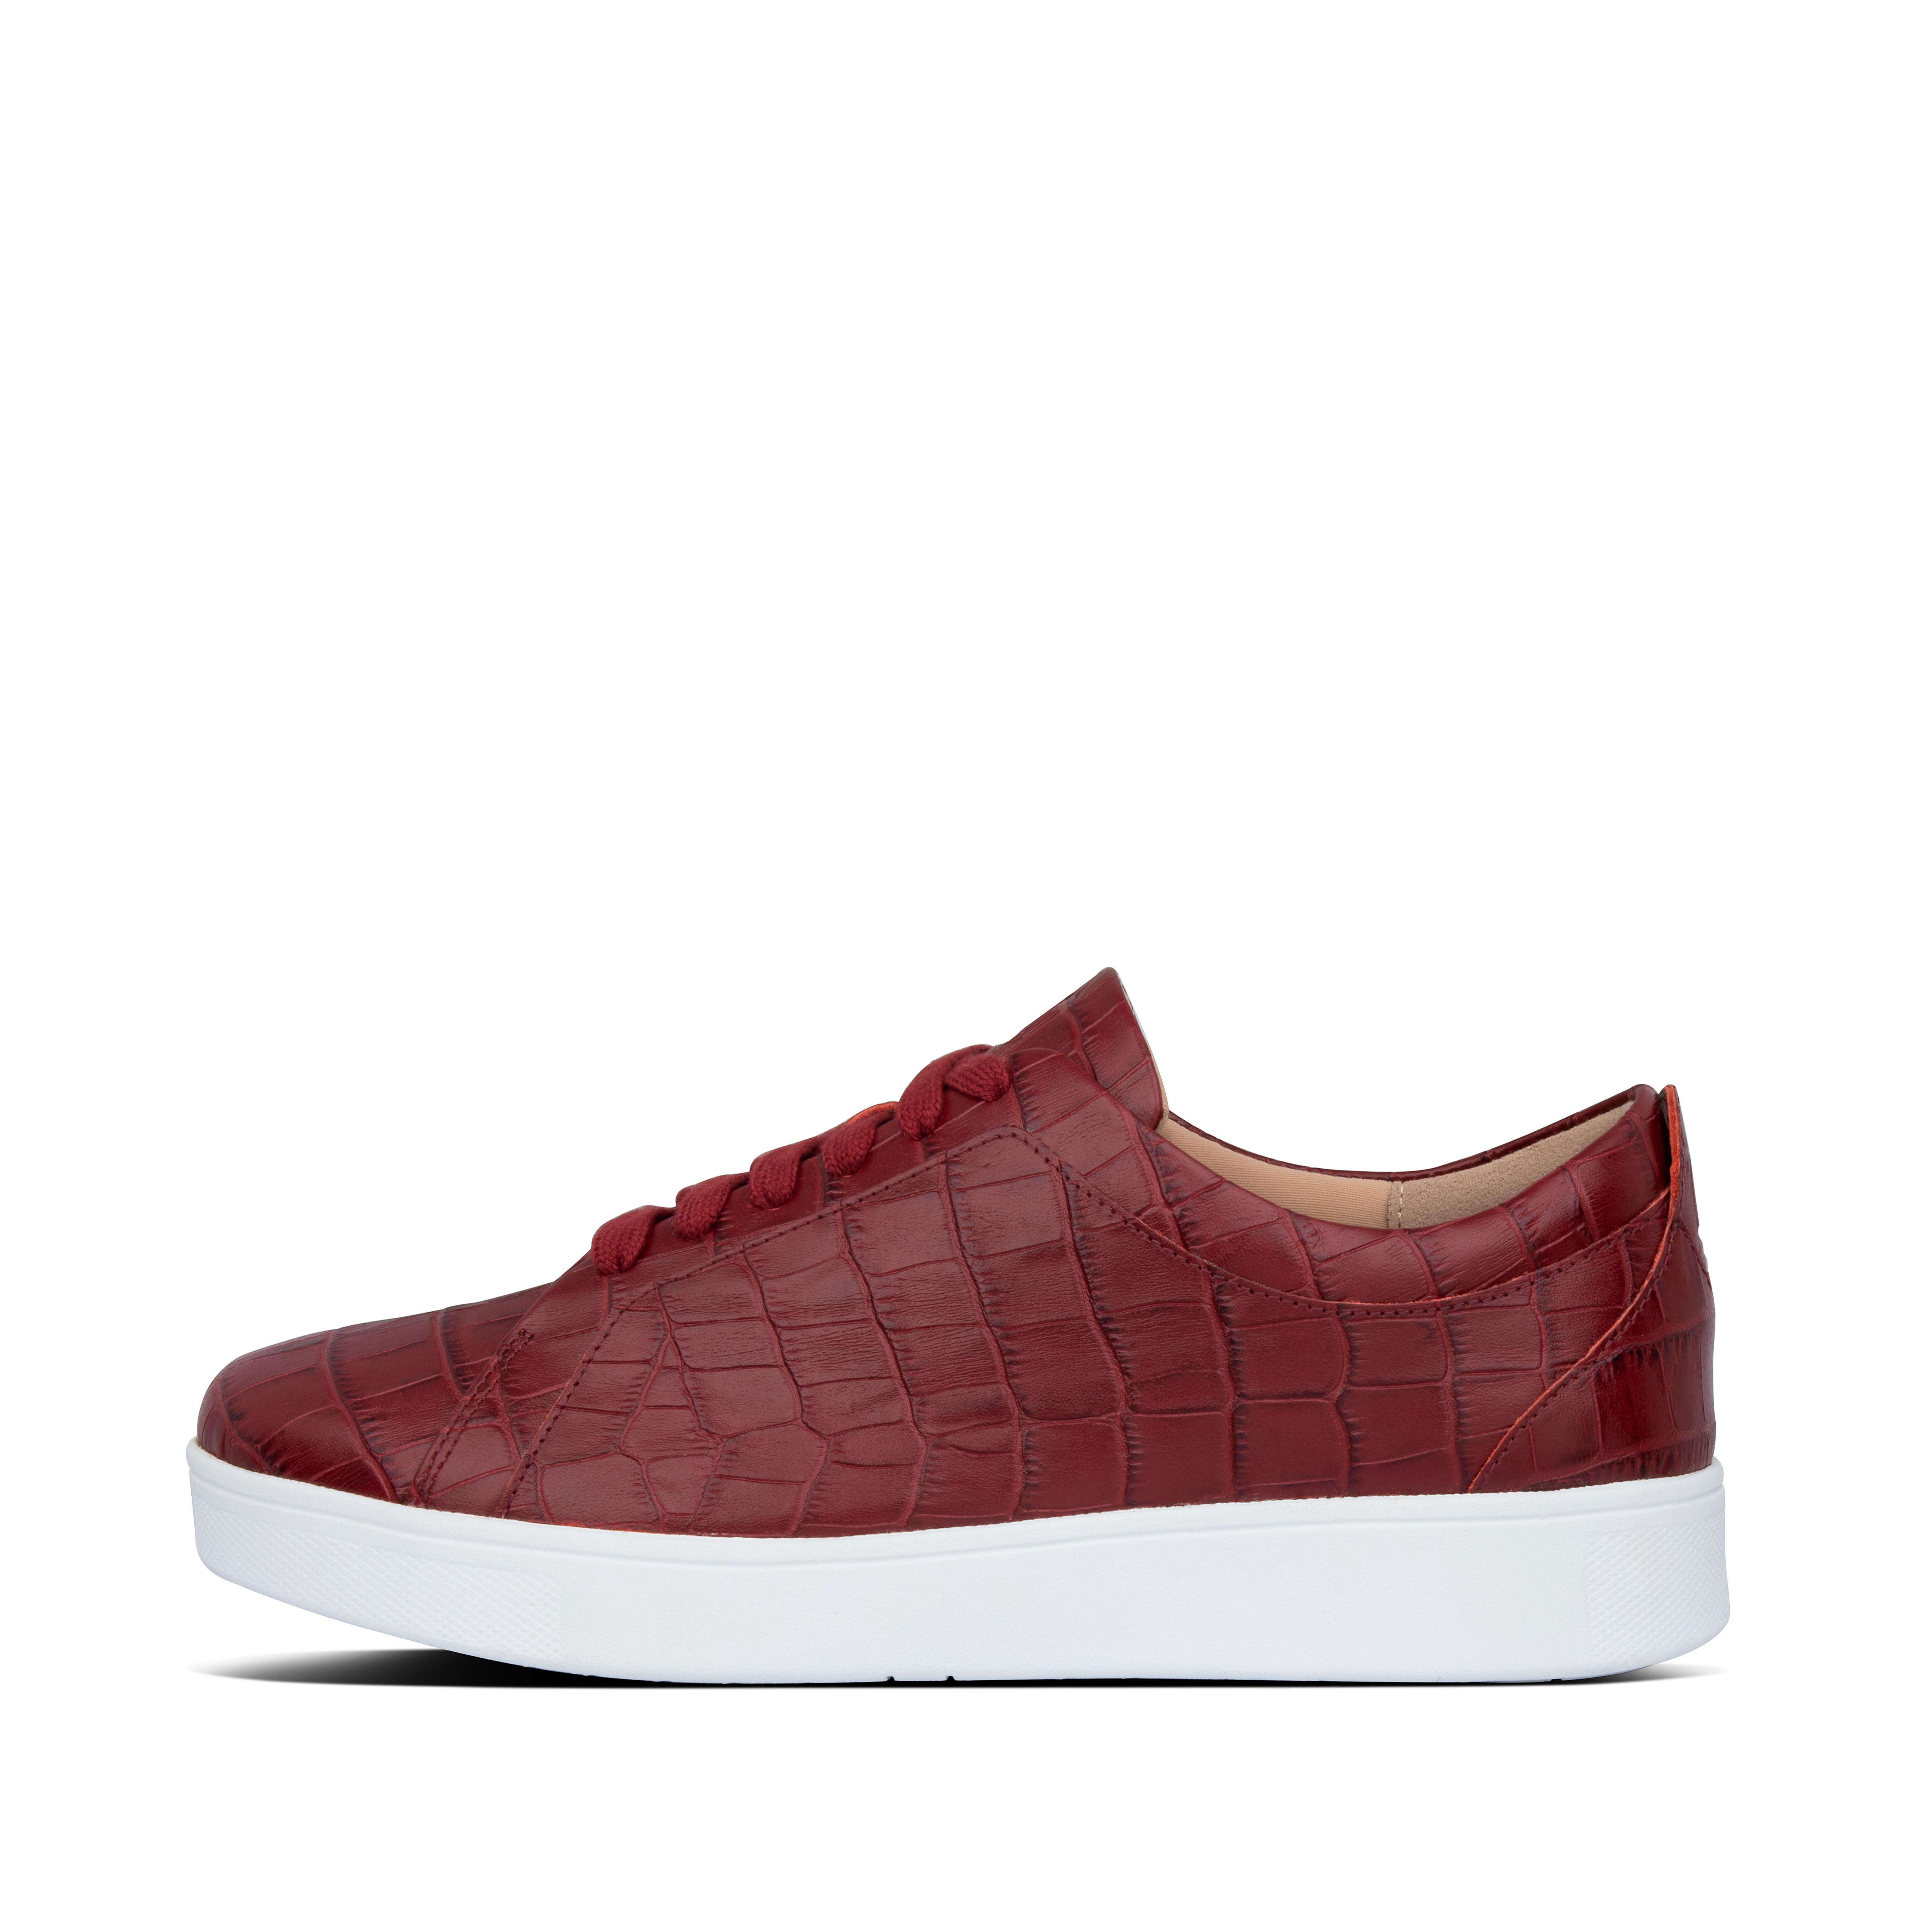 True classics. With clean styling, an old-school \\\'tennis shoe\\\' shape, and our ultra-light, flexible Anatomicush™ midsoles, these are the sneakers no woman can do without. The ones that\\\'ll work with your whole wardrobe - jeans, dresses, tailored suits - season after season. Your go-tos on busy days when comfort is non-negotiable. Life essentials. This version in croc-embossed leather, a hot runway trend, will instantly elevate your look.